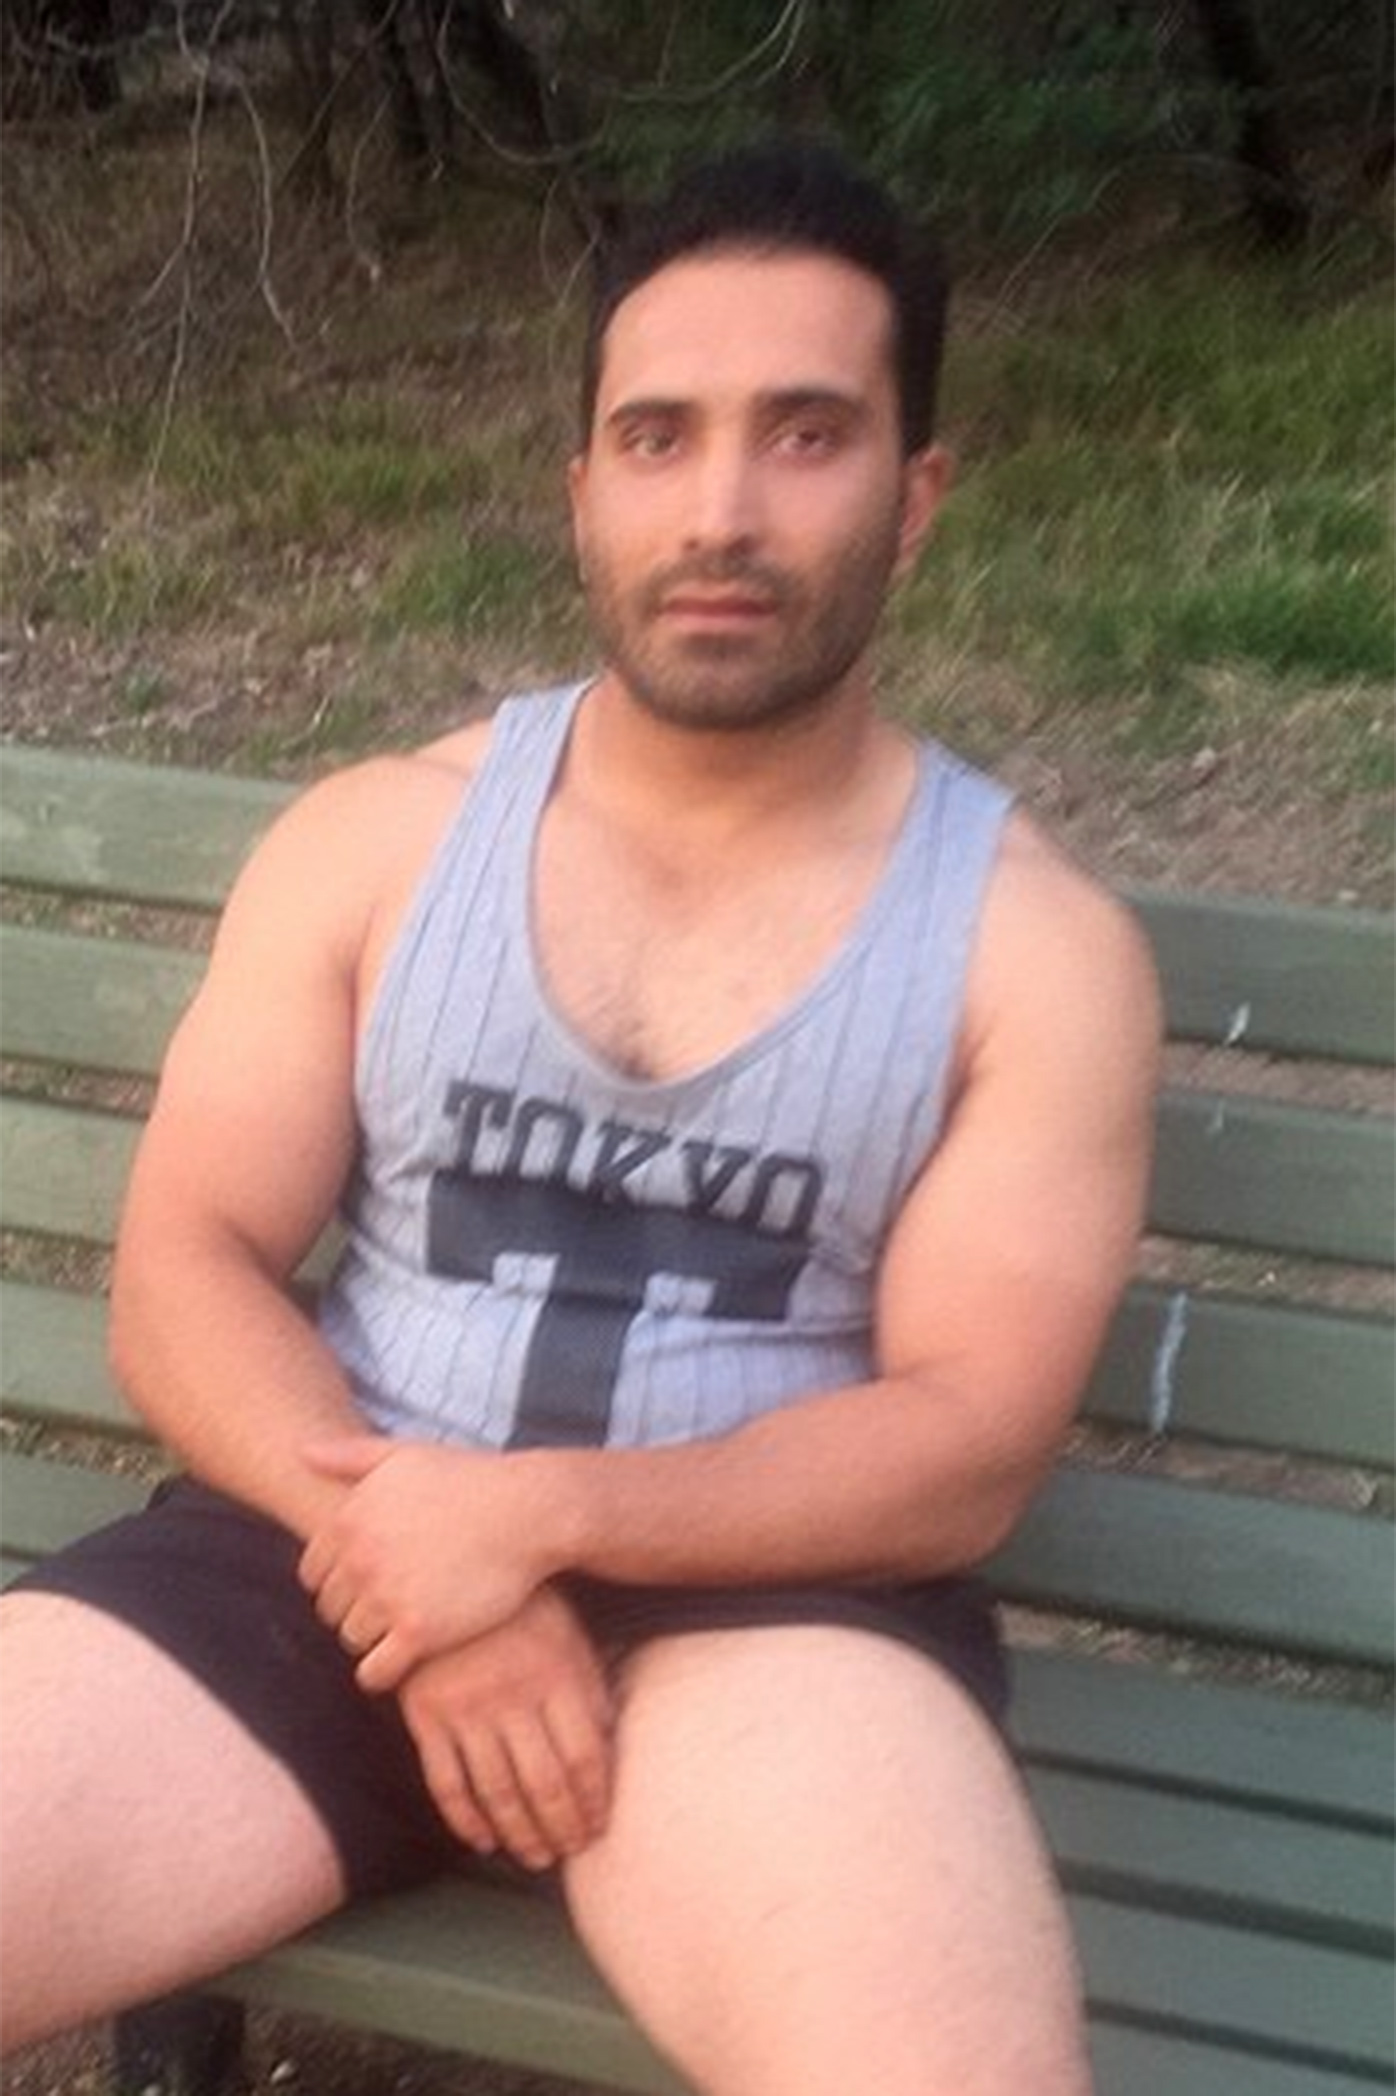 Police release photo of man they want to speak to over flashing in Melbourne park